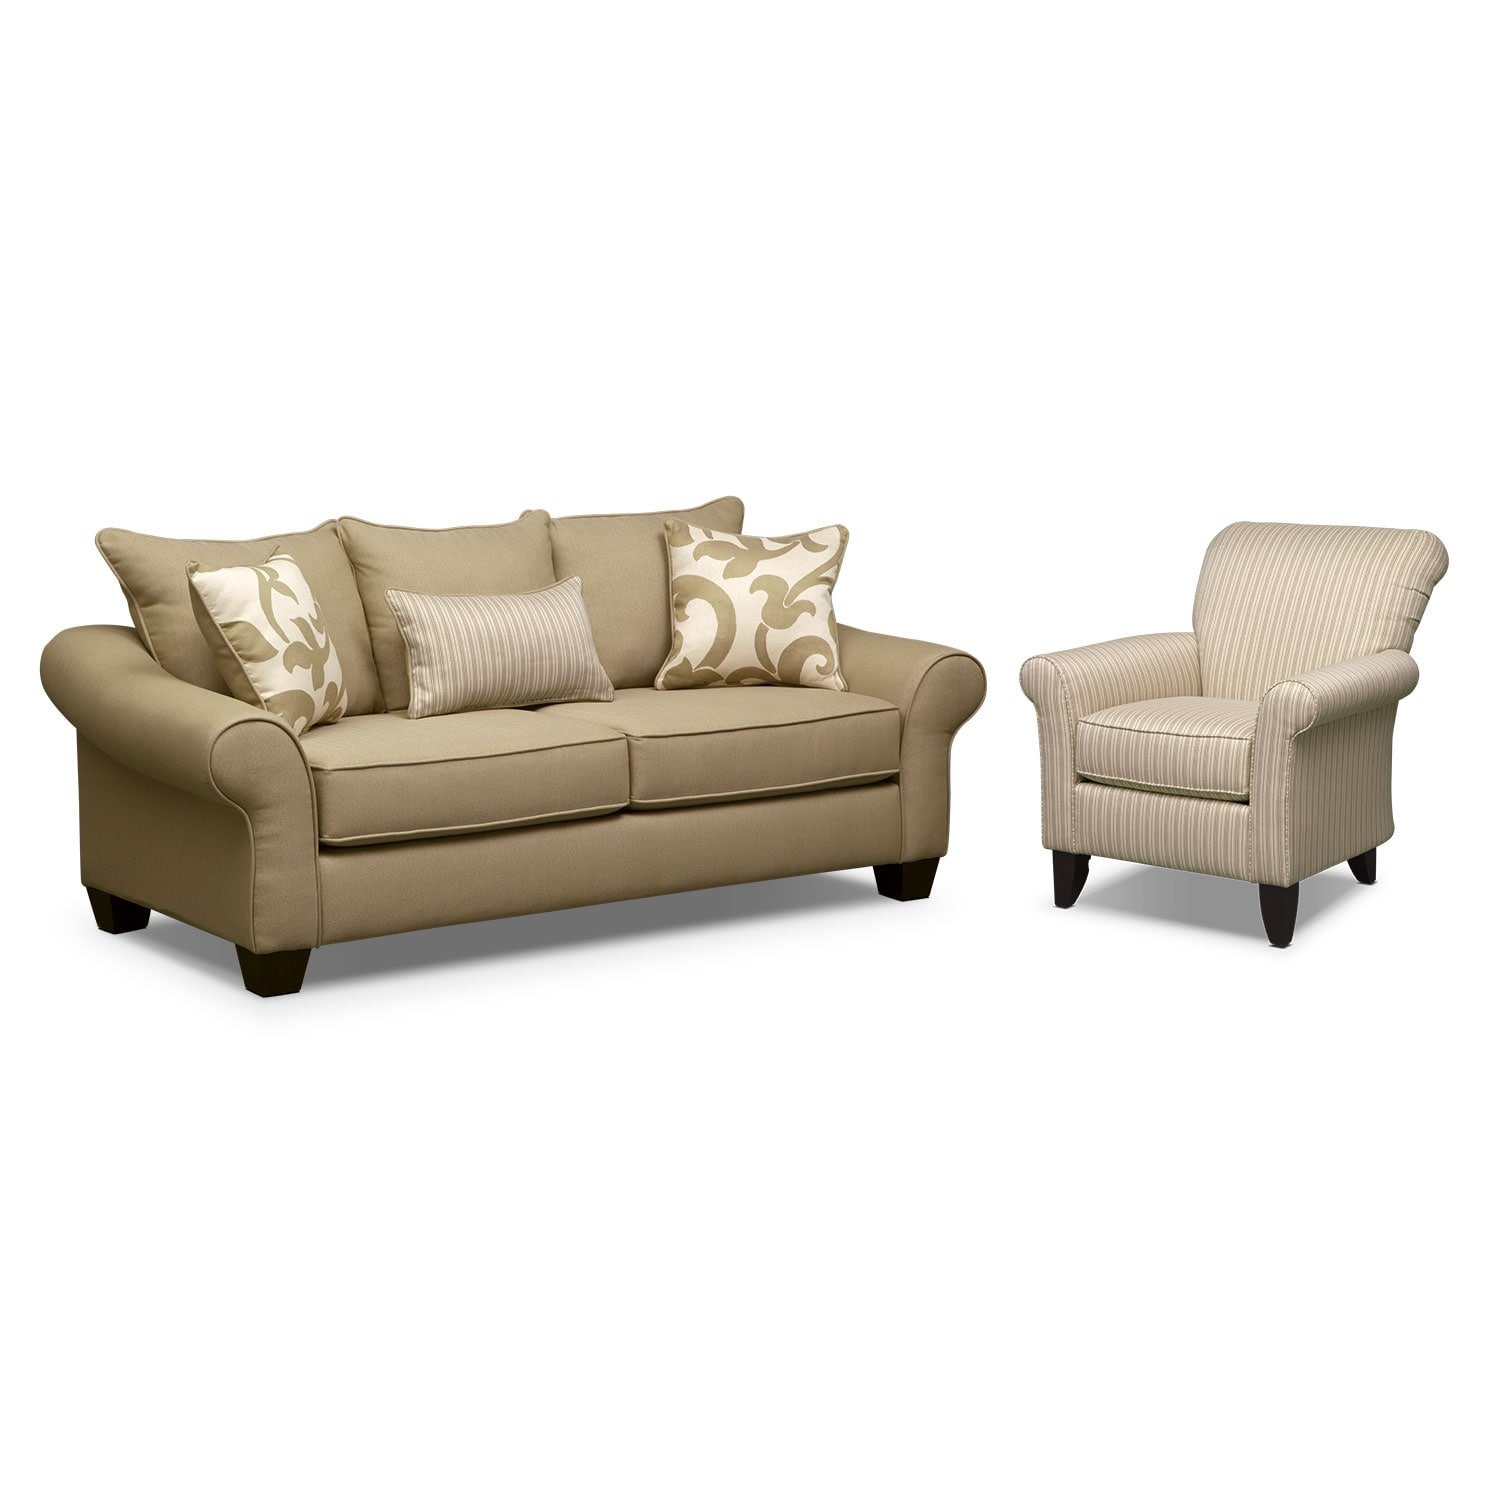 Colette Full Memory Foam Sleeper Sofa And Accent Chair Set